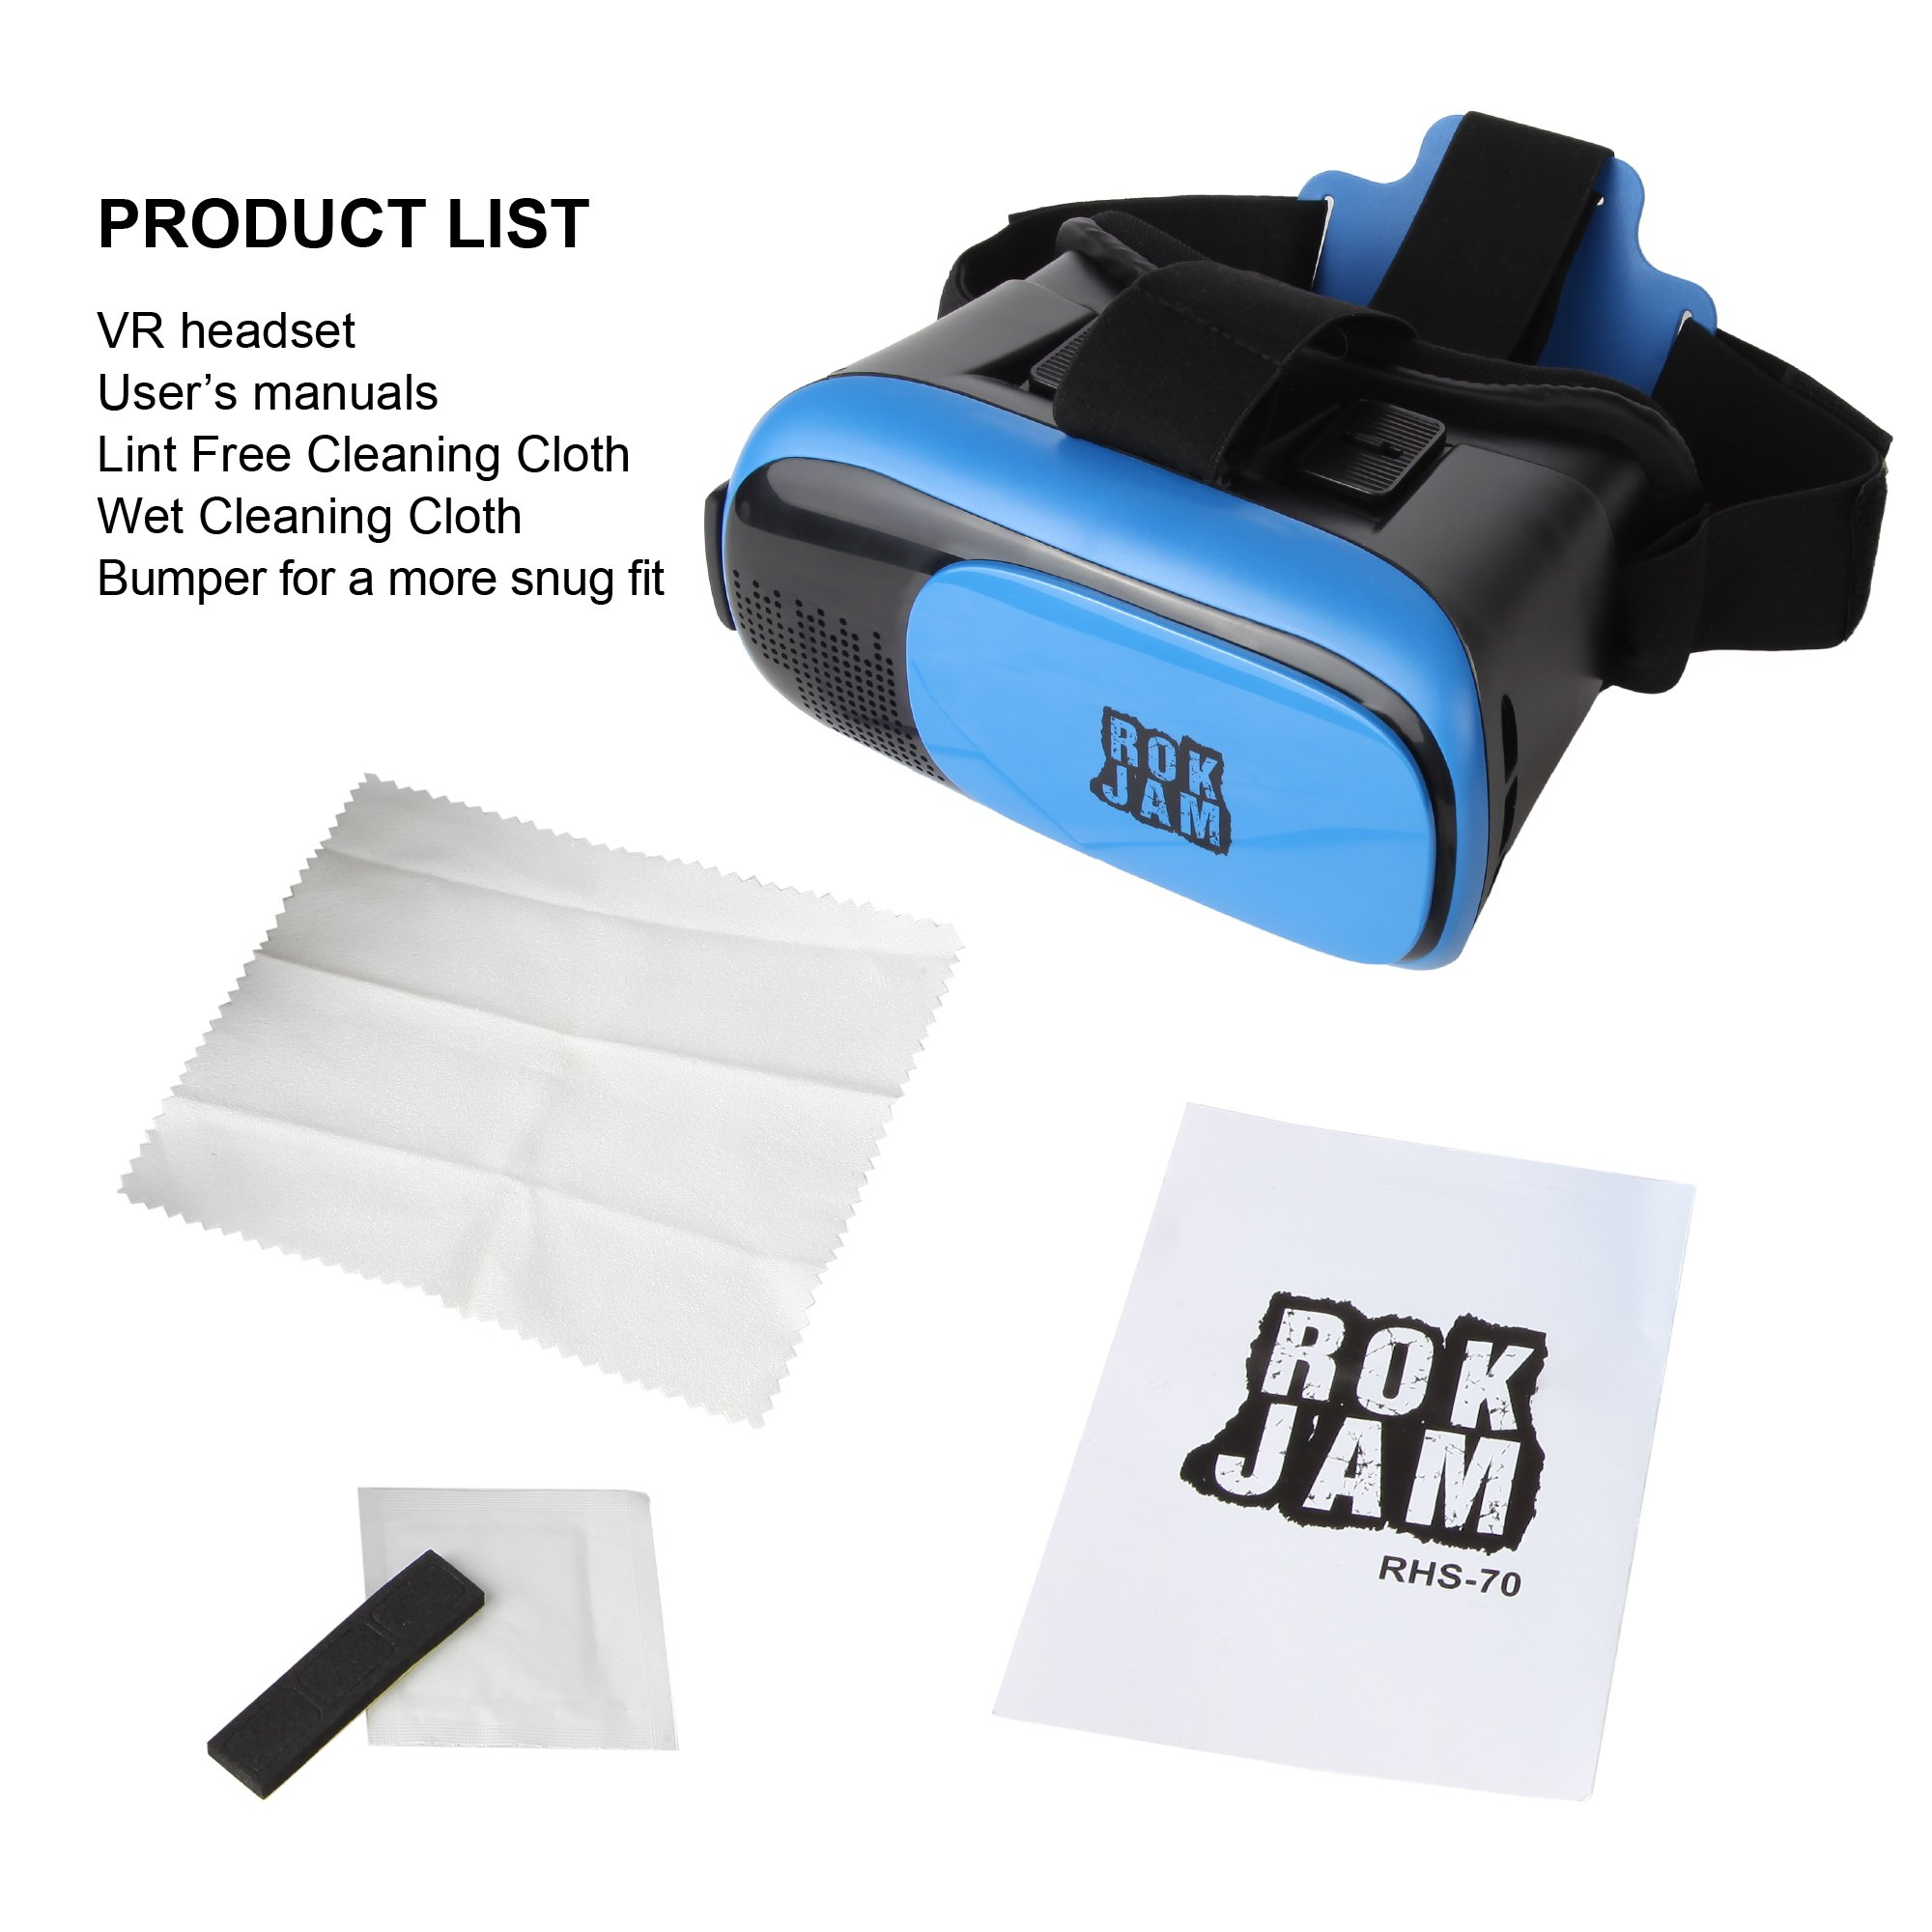 3D VR Headset Technology - Best Virtual Reality Experience For Games & Video - Watch Movies In Breathtaking HD With Your Smartphone Fit Glasses & Helmet - Goggles For Your iPhone & Android Smartphones by Rok Am (Image #4)